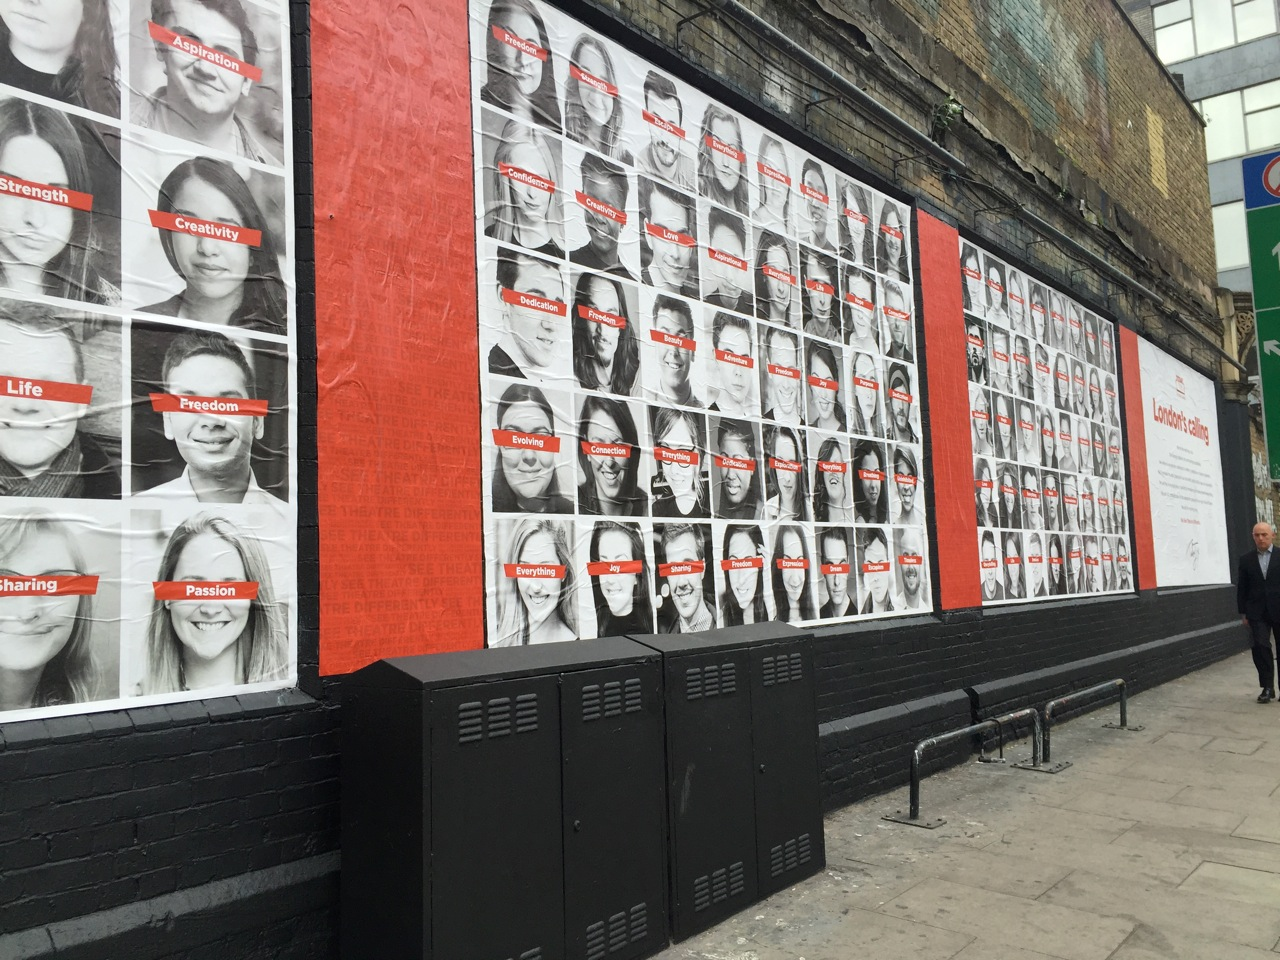 TodayTix App at the Shoreditch Art Wall